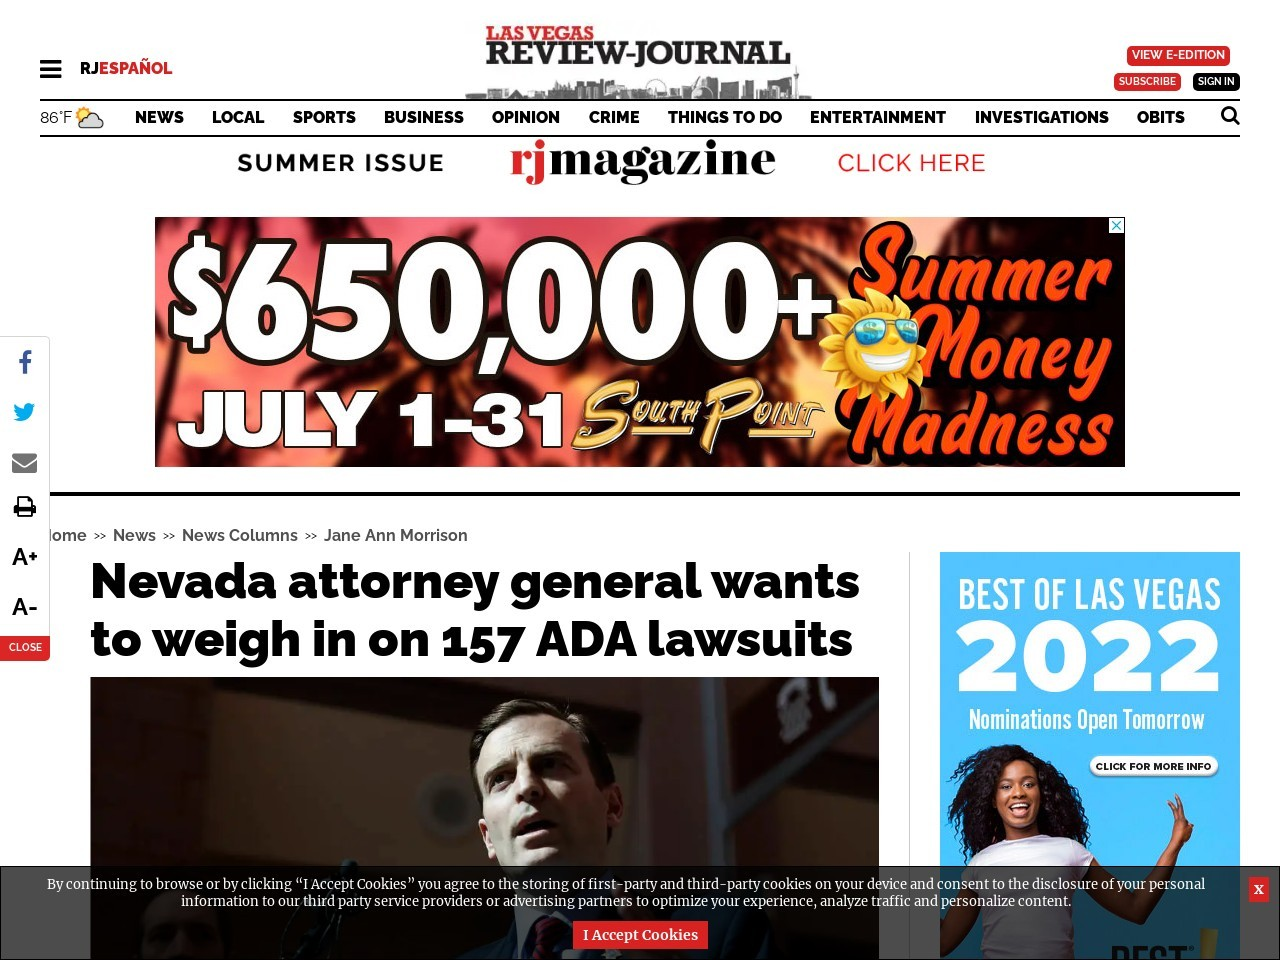 Nevada attorney general wants to weigh in on 157 ADA lawsuits